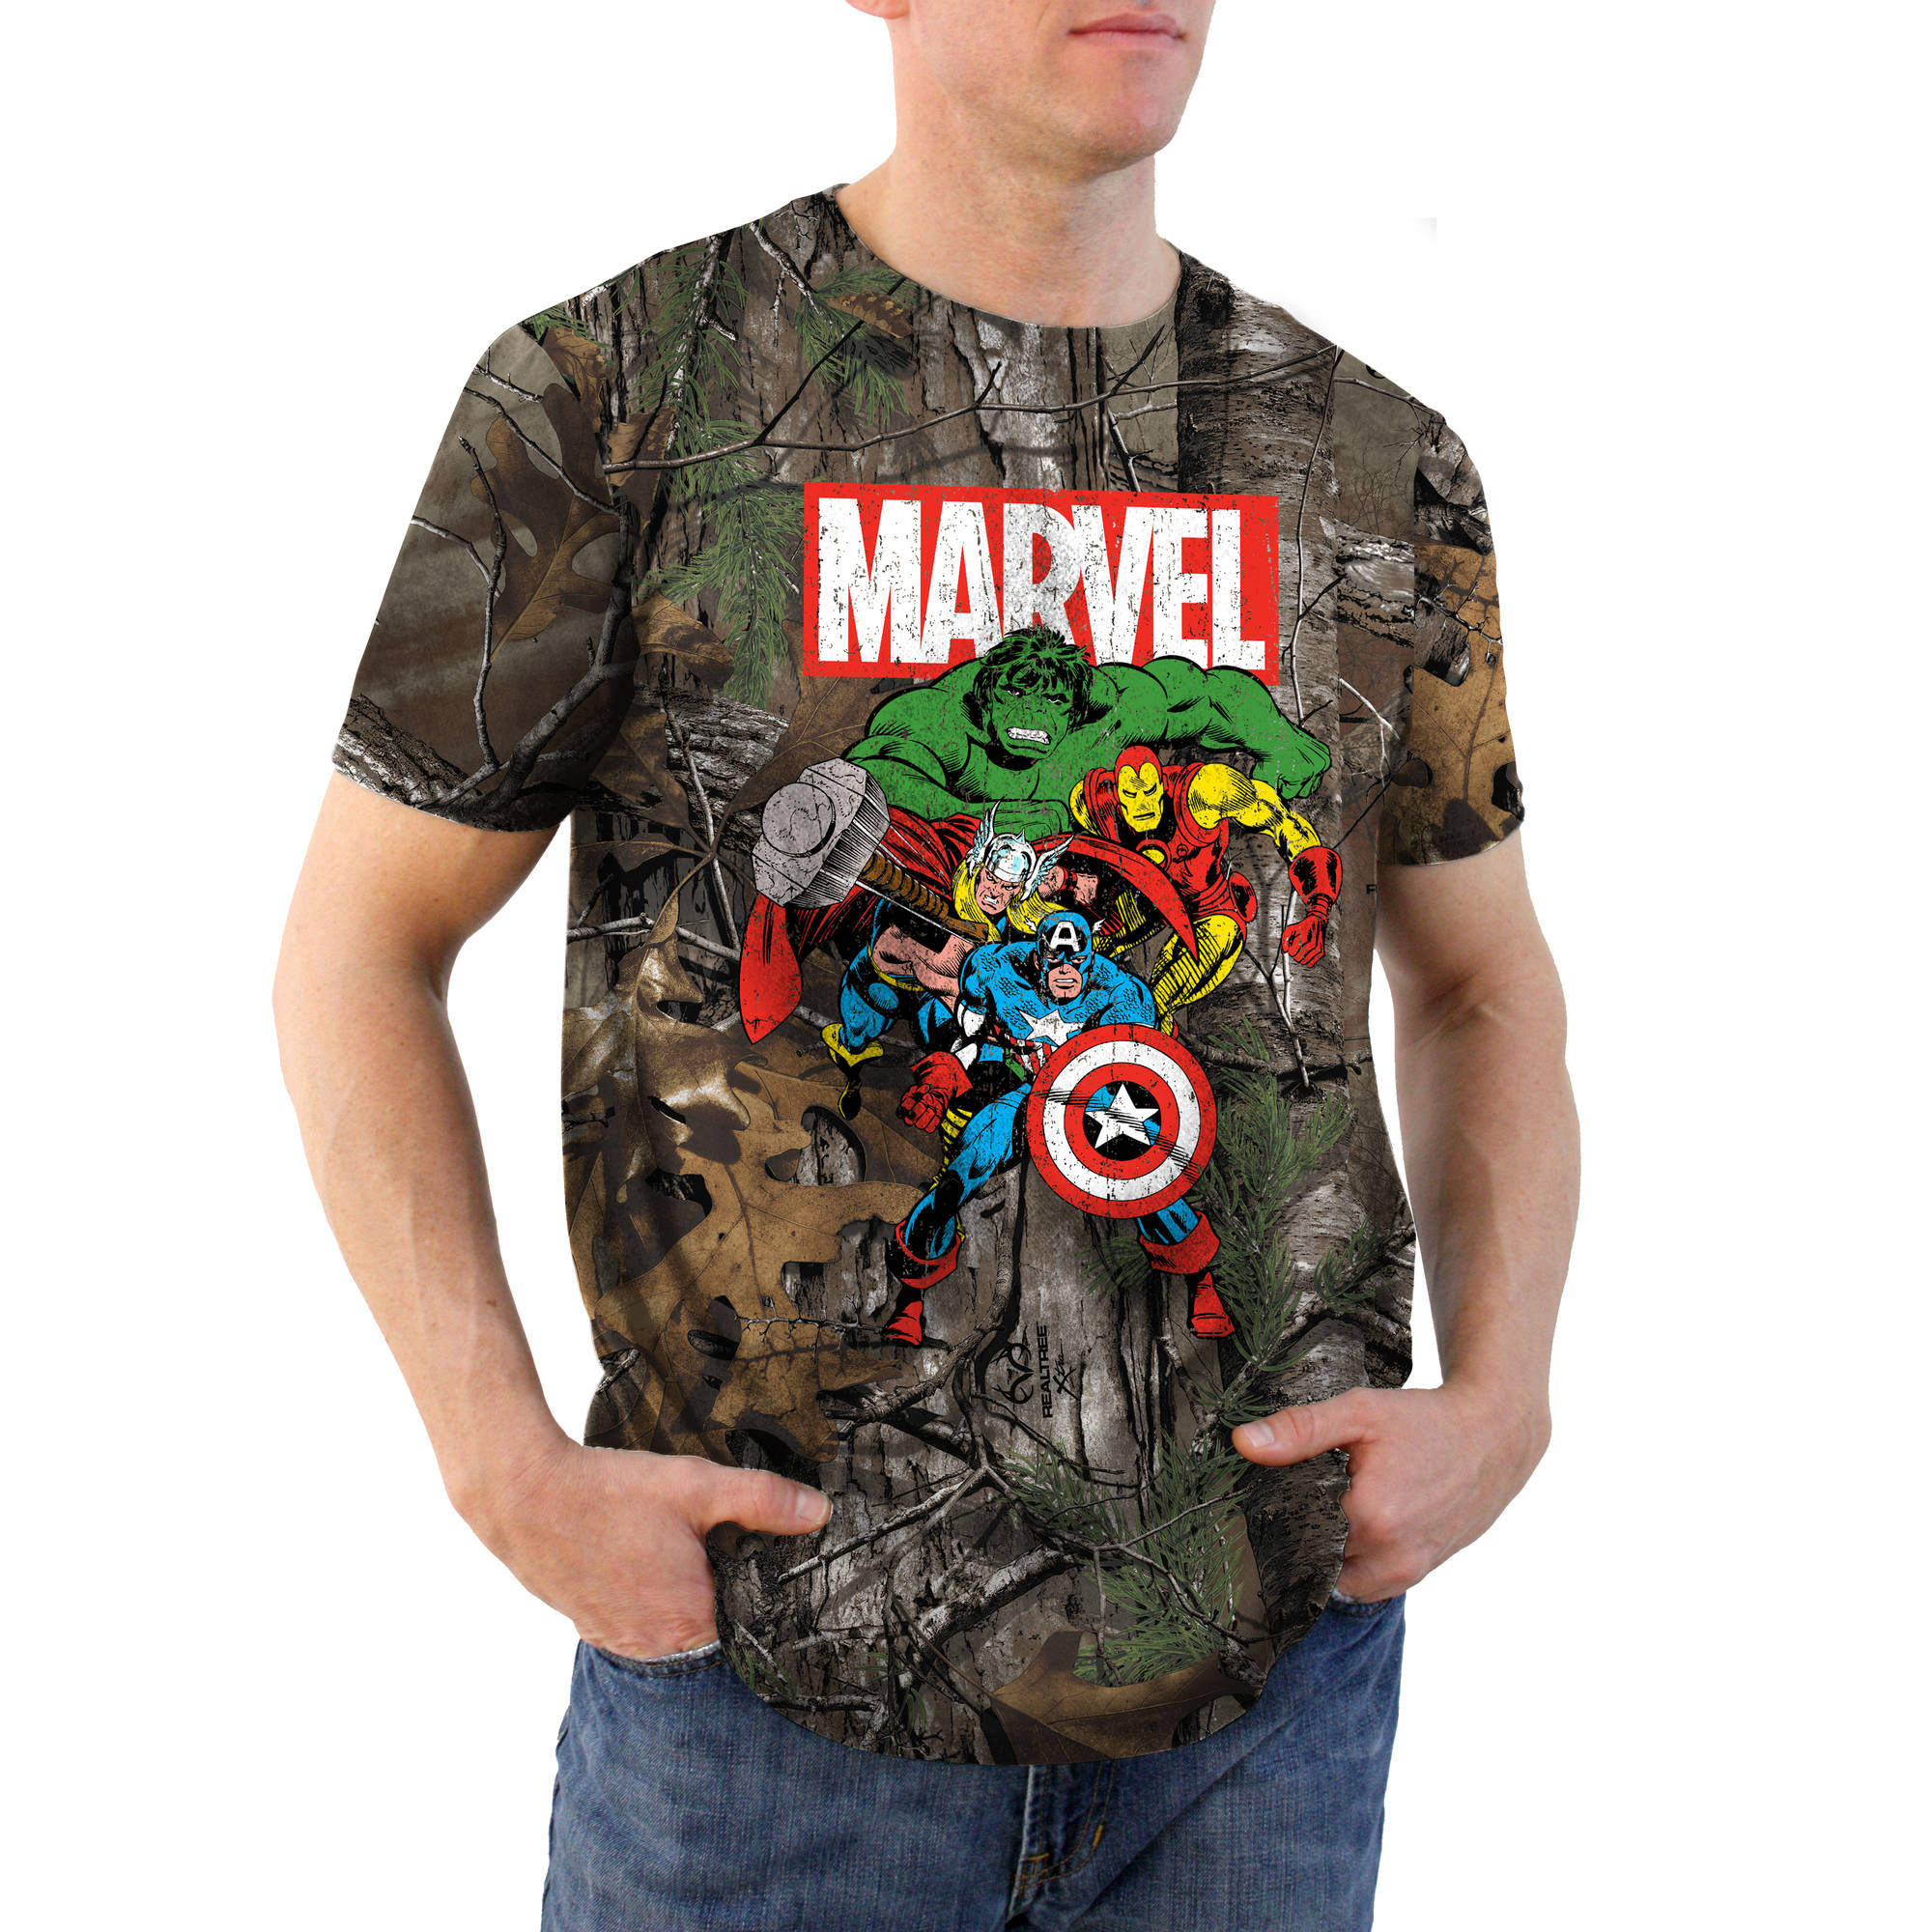 Avengers Title Realtree Camo Men's Graphic Tee